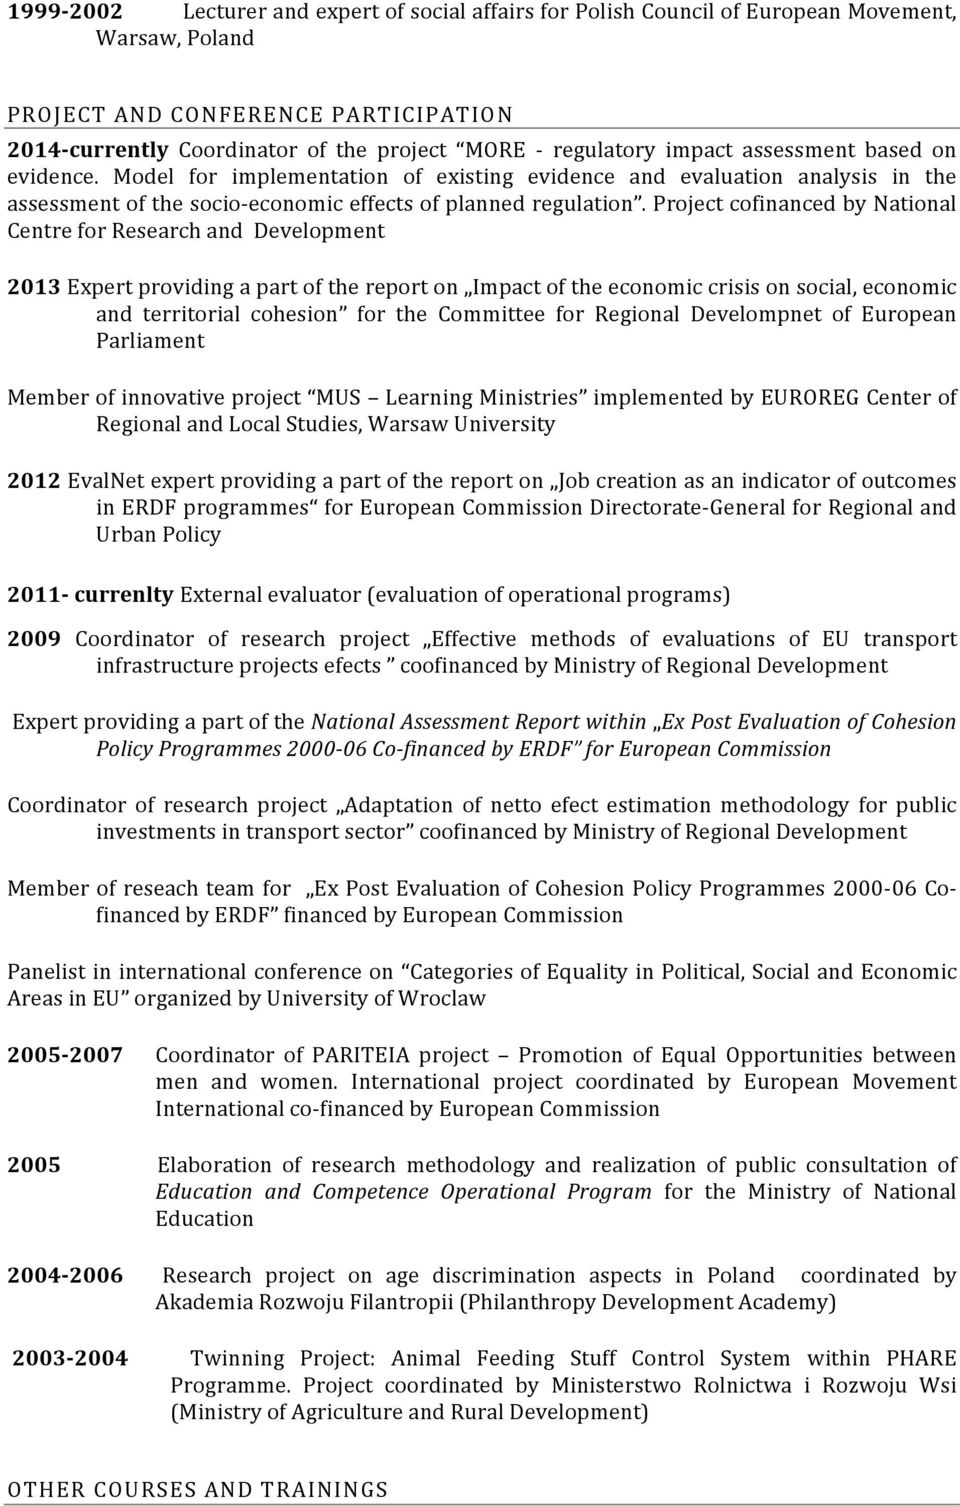 Project cofiaced by Natioal Cetre for Research ad Developmet 2013 Expert providig a part of the report o Impact of the ecoomic crisis o social, ecoomic ad territorial cohesio for the Committee for